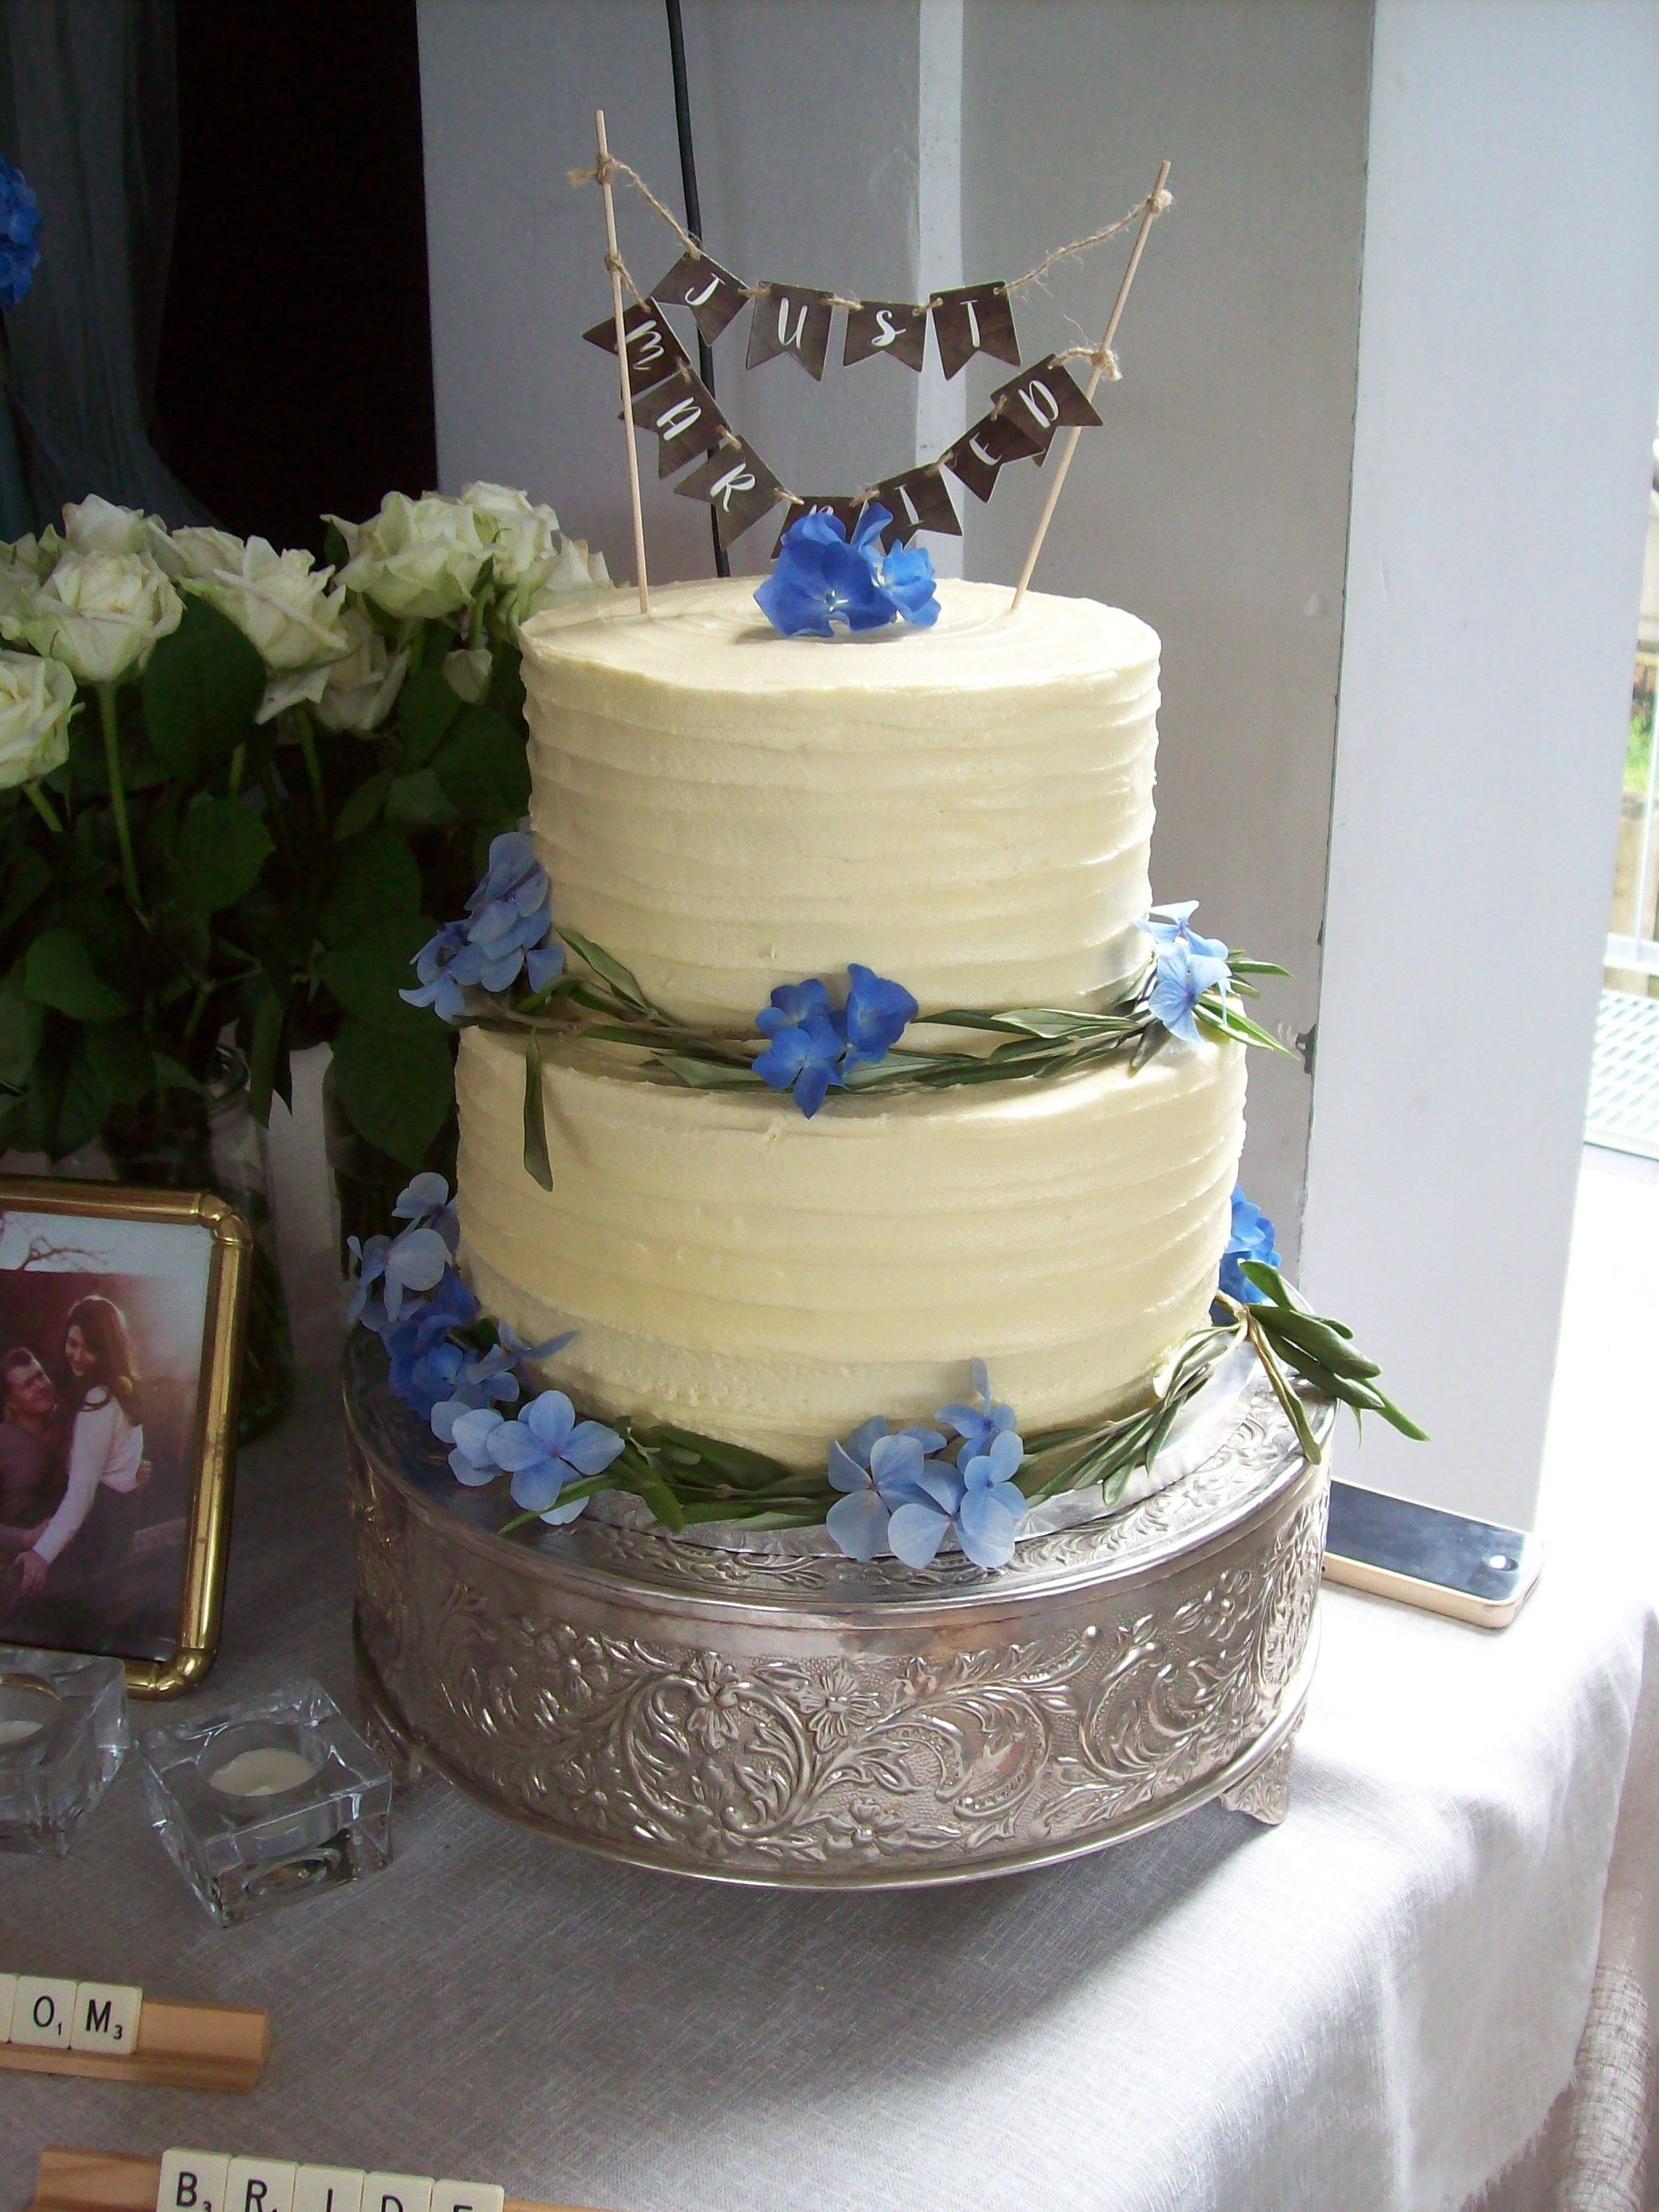 Buttercream wedding cake 395 topper and adornments added